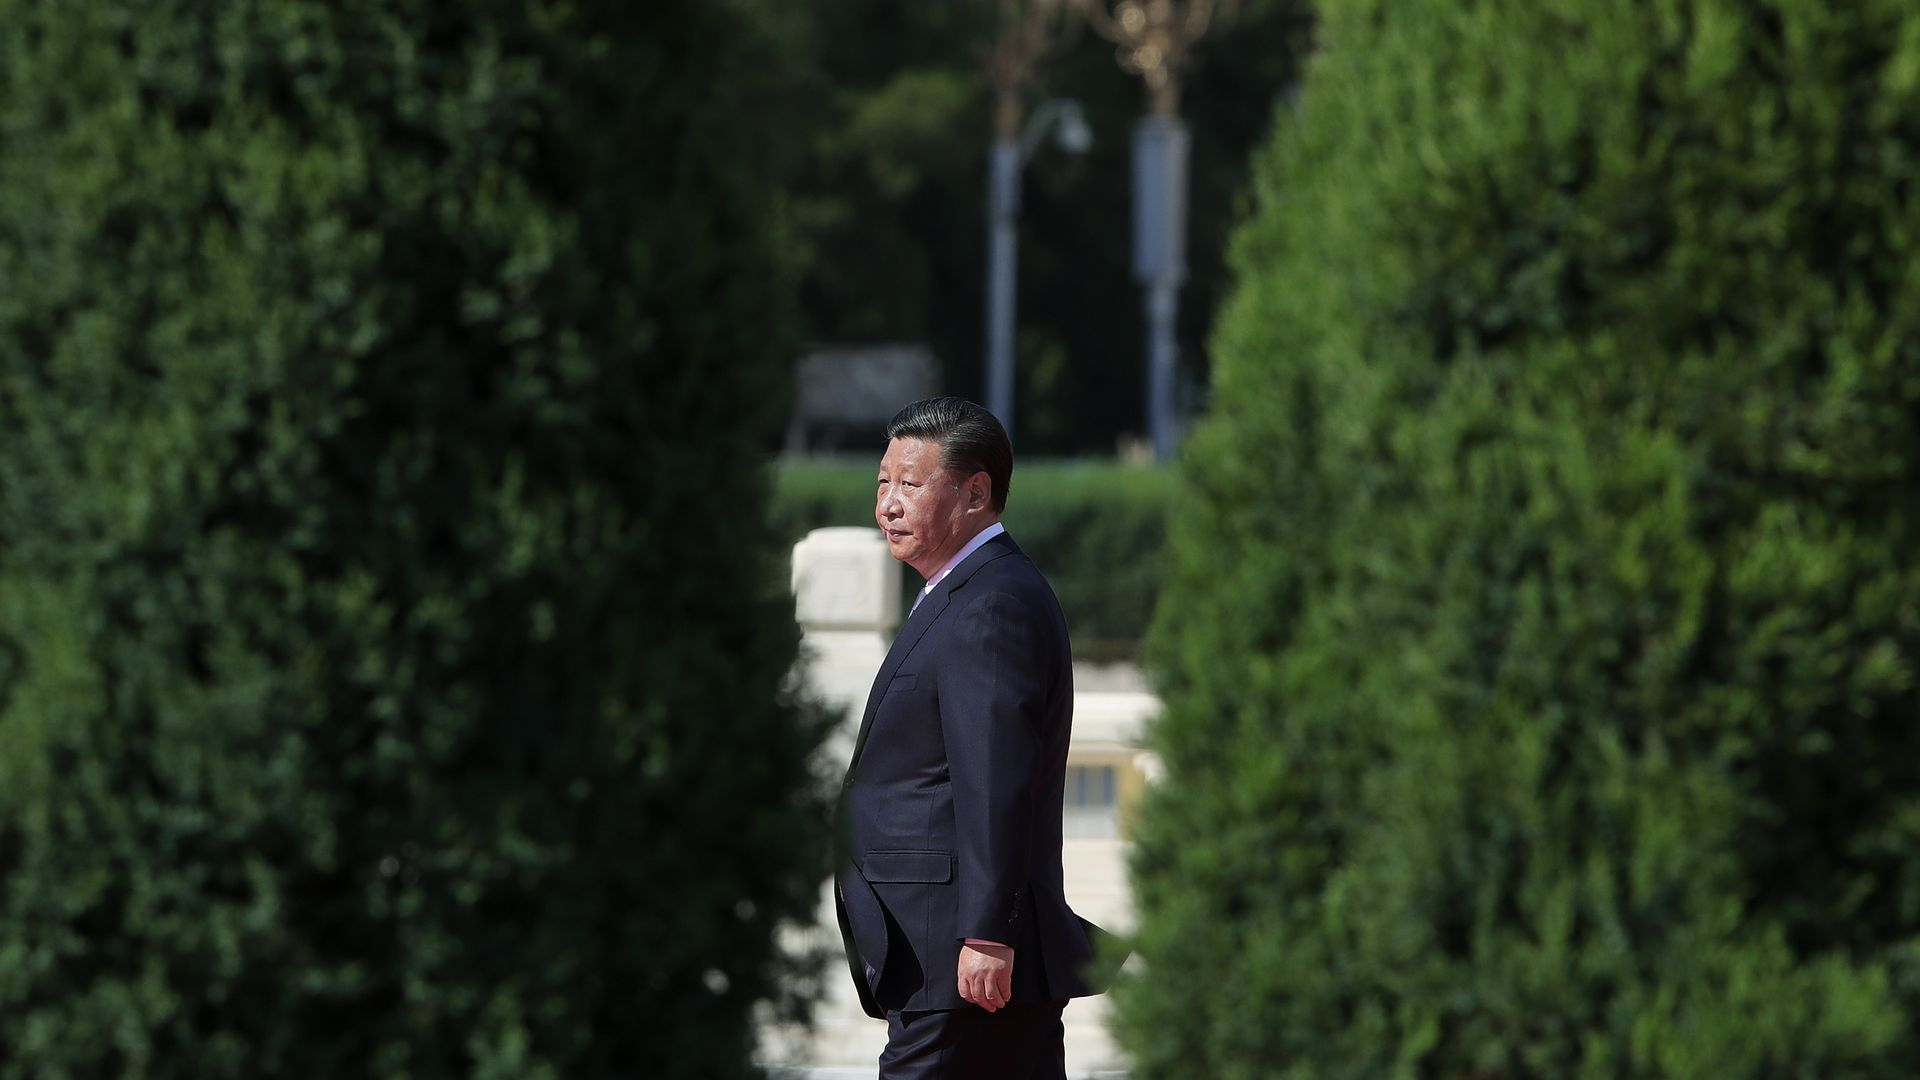 Photo of China President Xi Jinping walking on the grounds of a garden